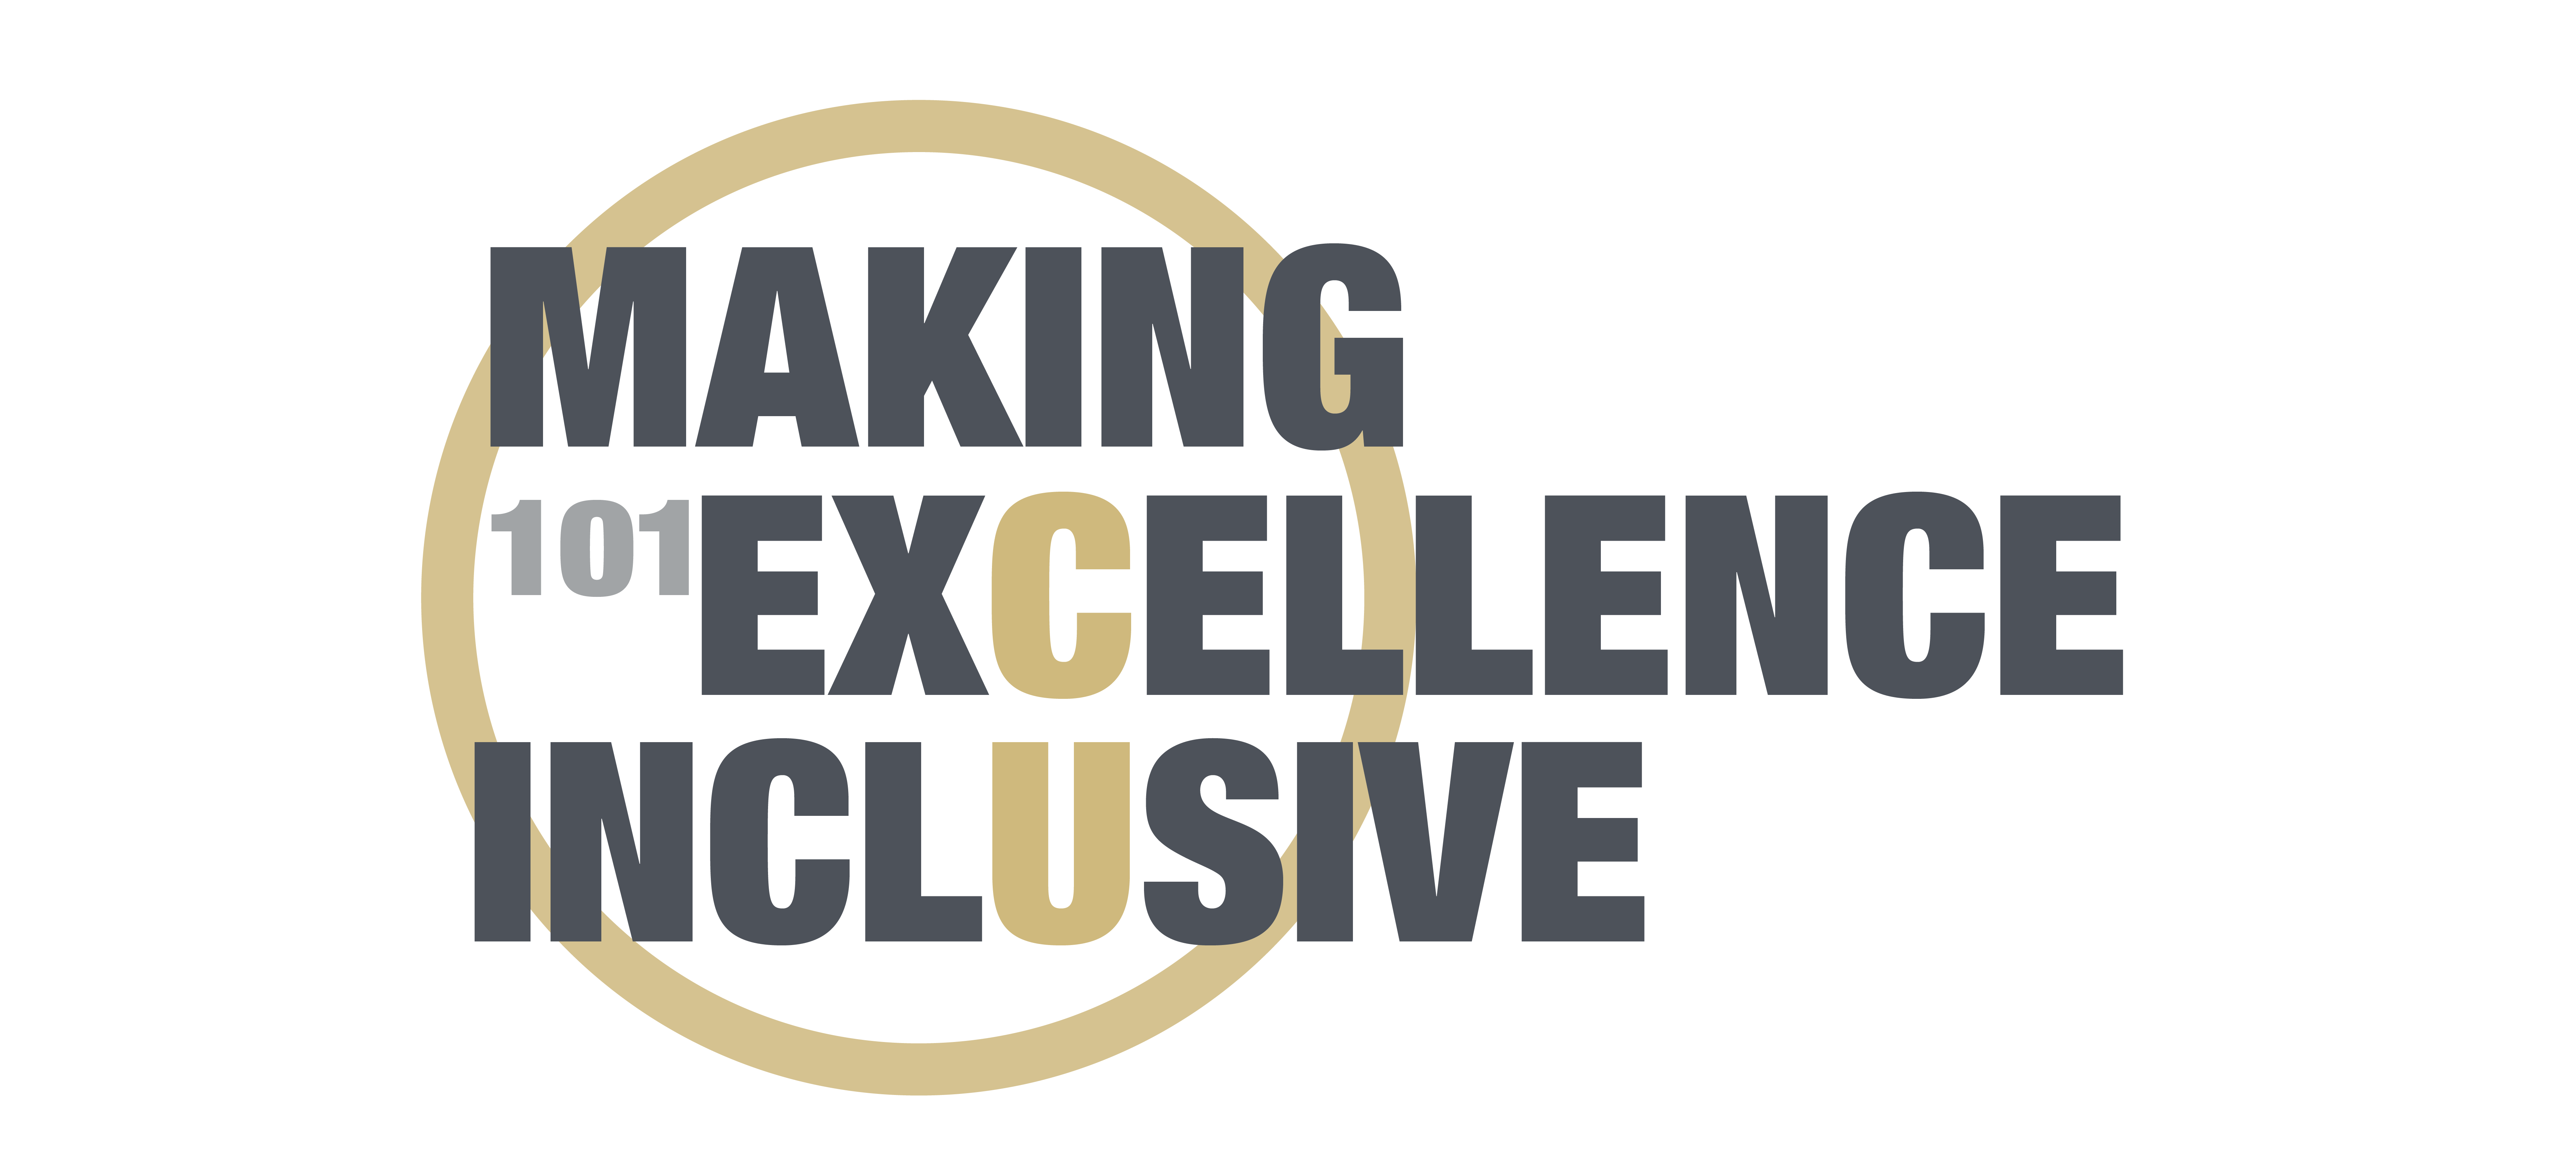 Making Excellence Inclusive 101 Logo